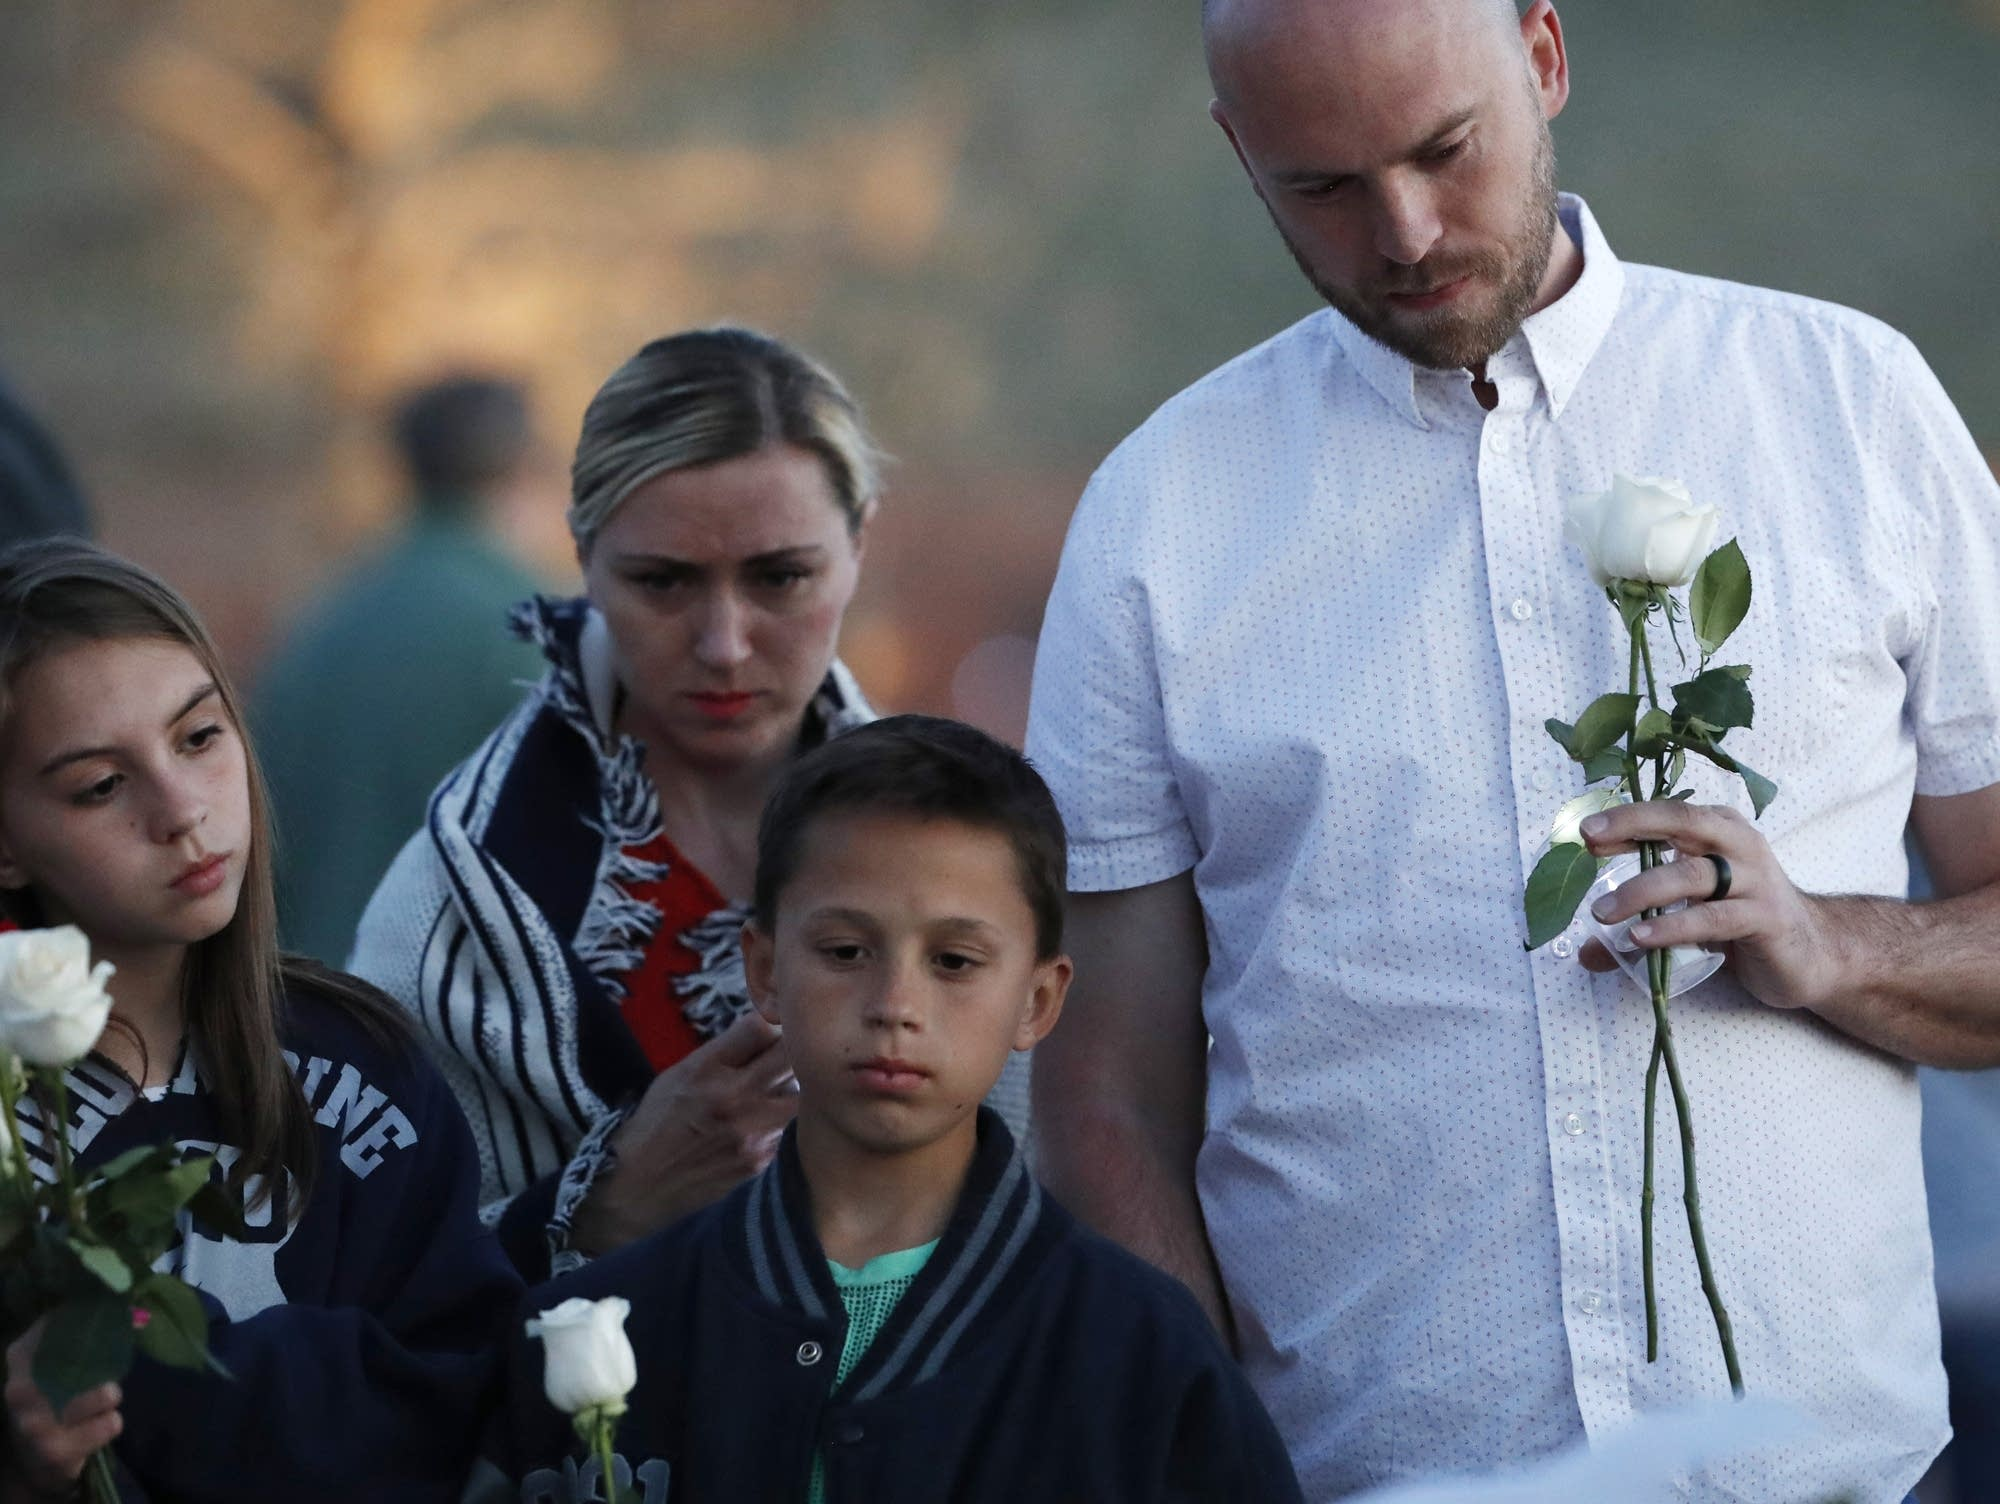 Will Beck at the Columbine Memorial